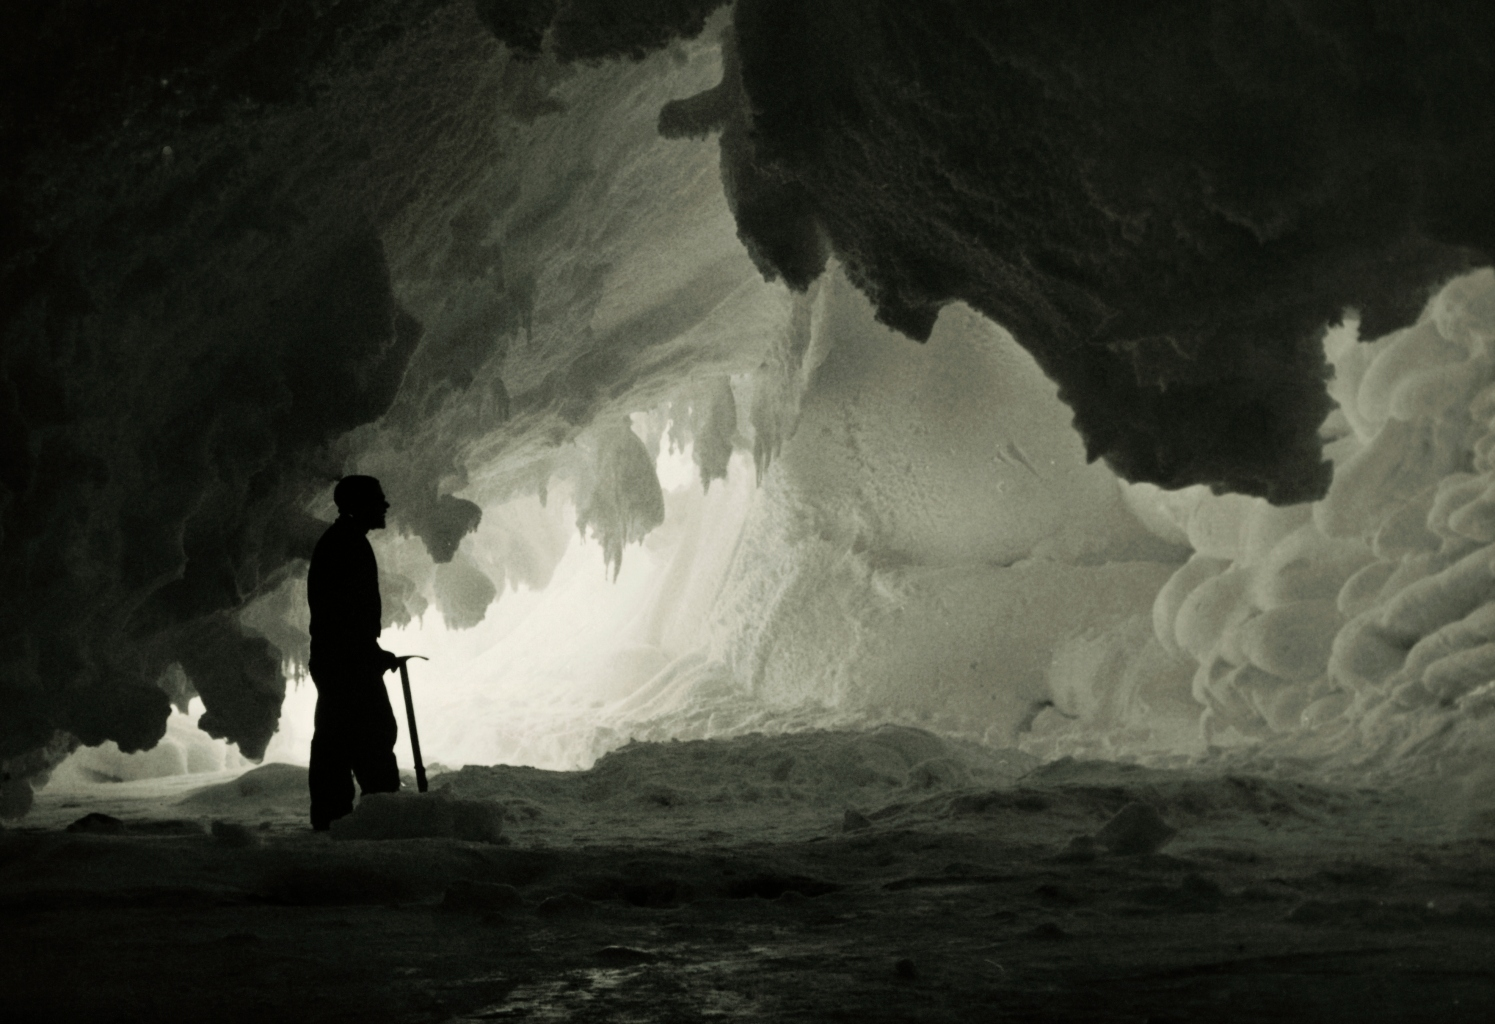 (Original Caption) Antarctica: Interior of ice cave about 10 miles from McMurdo Station. A man with an icepick stands there. Undated photograph.